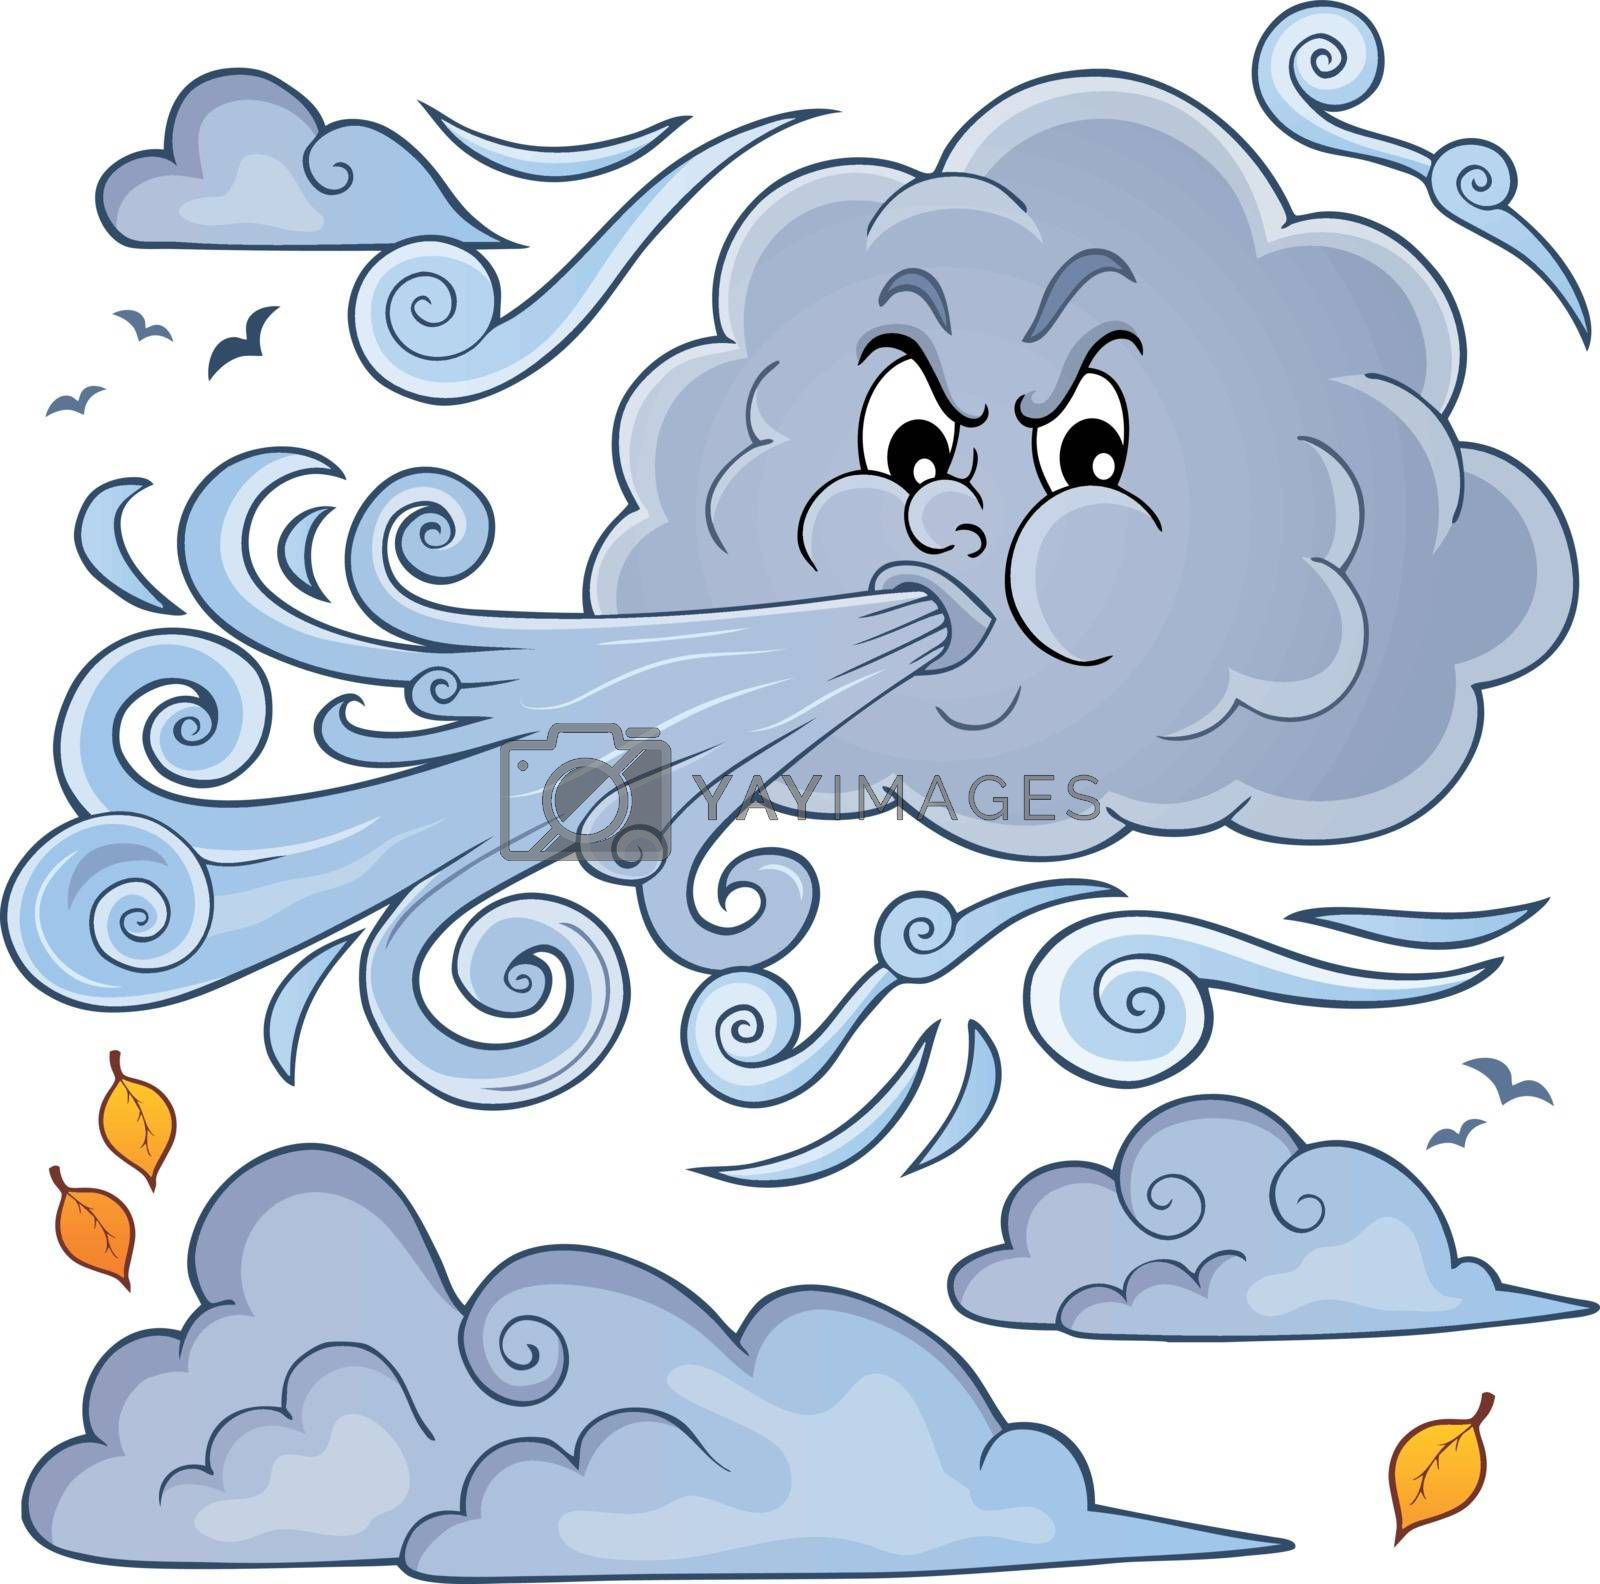 Clouds and wind theme image 1 - eps10 vector illustration.